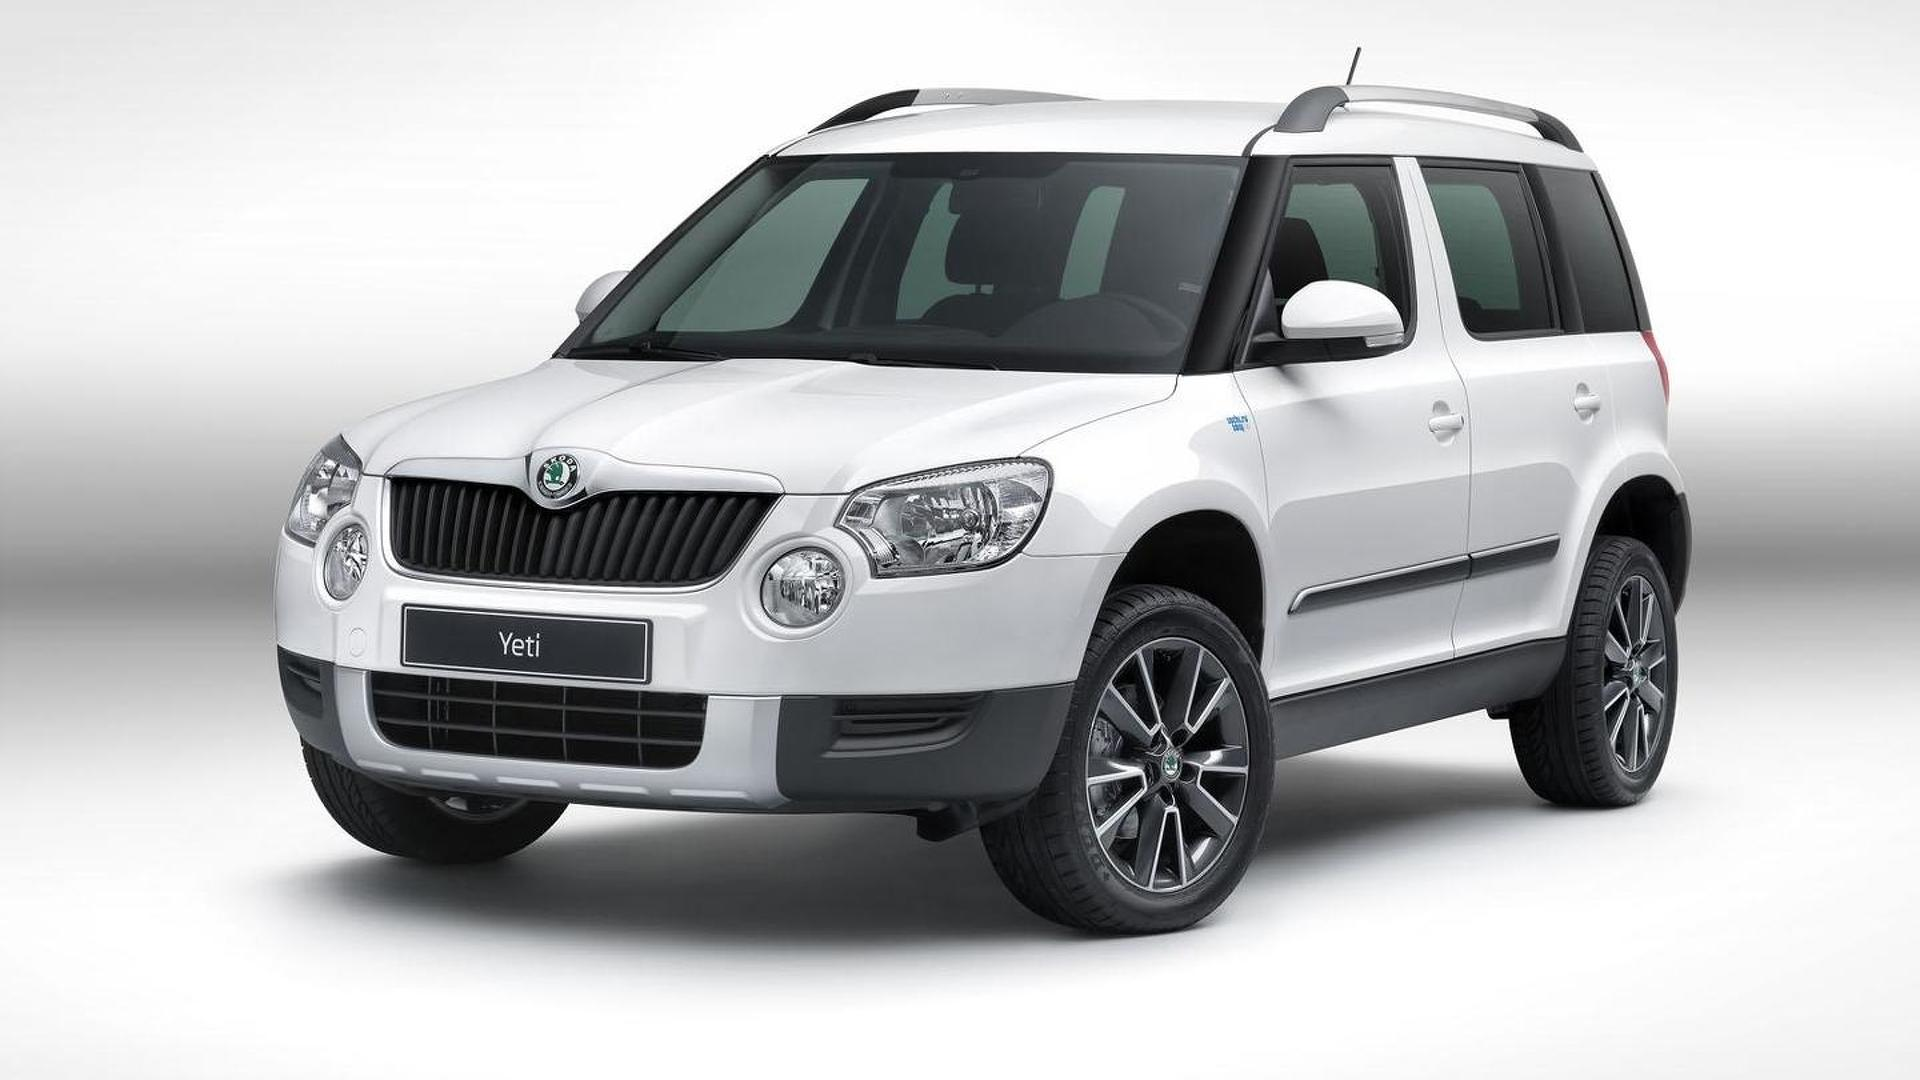 Skoda Yeti News And Reviews Motor1 Com